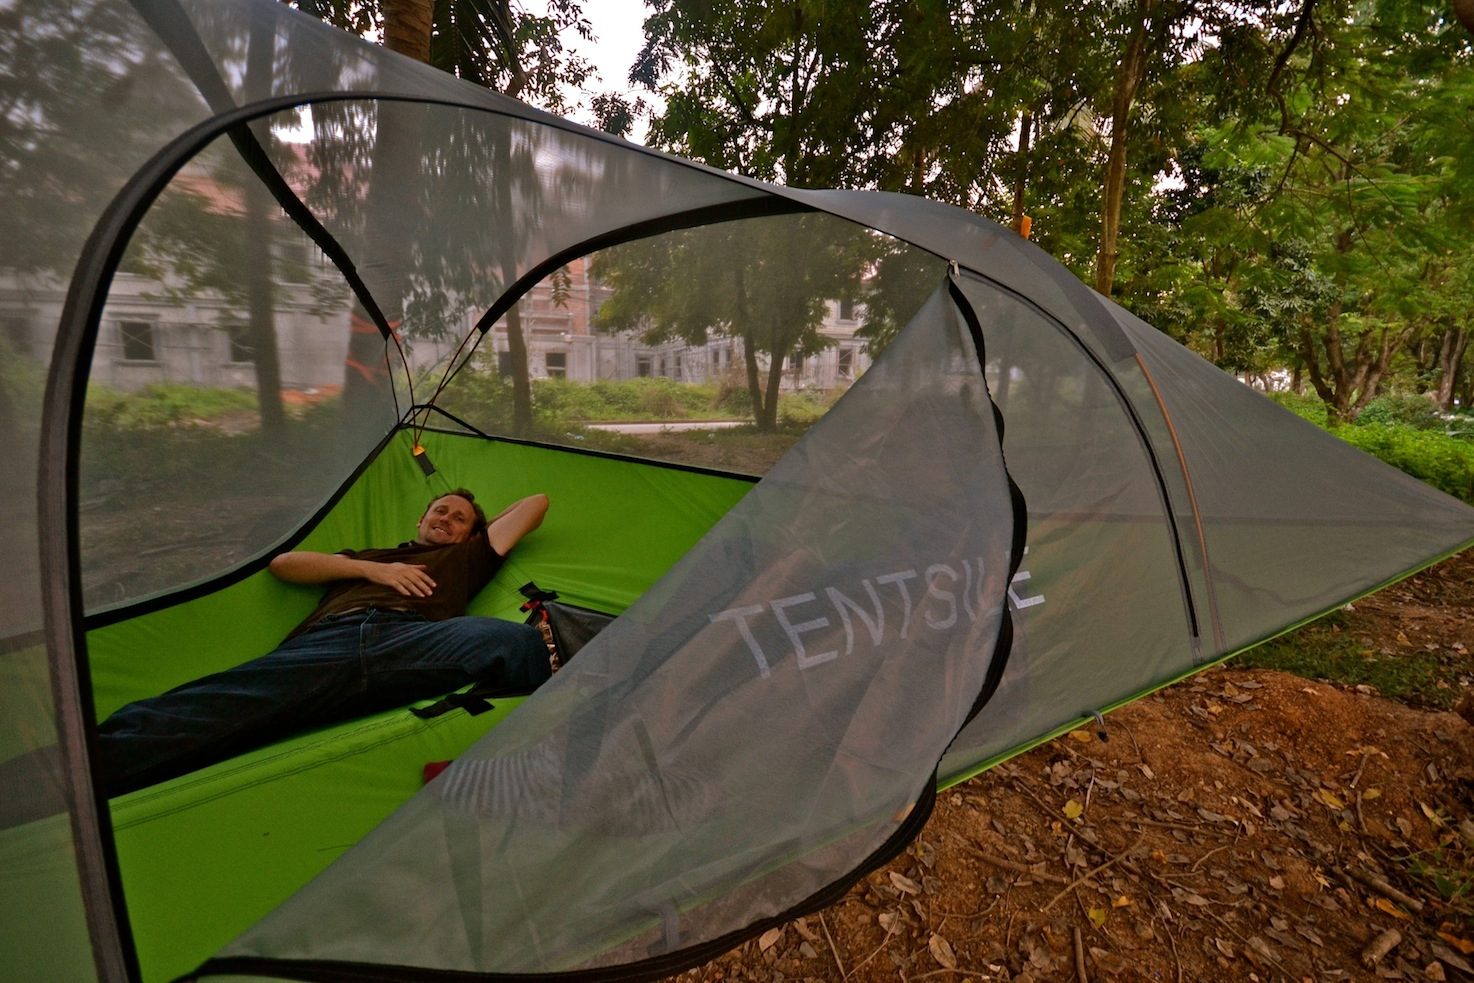 Suspended Tents for Outdoors Fun